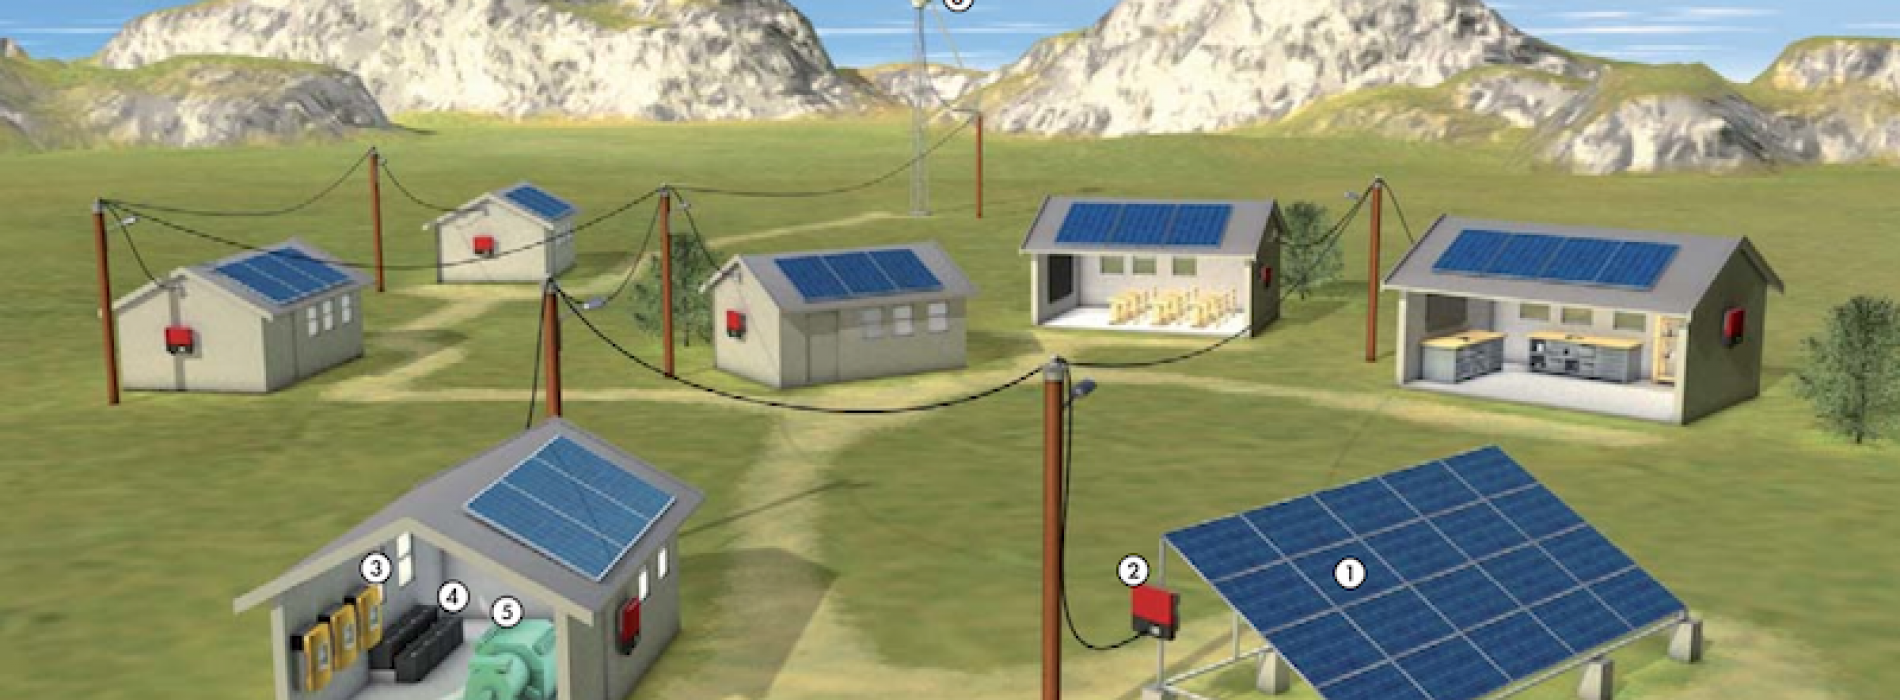 Engine Enel, entrano nel solare off grid in Africa